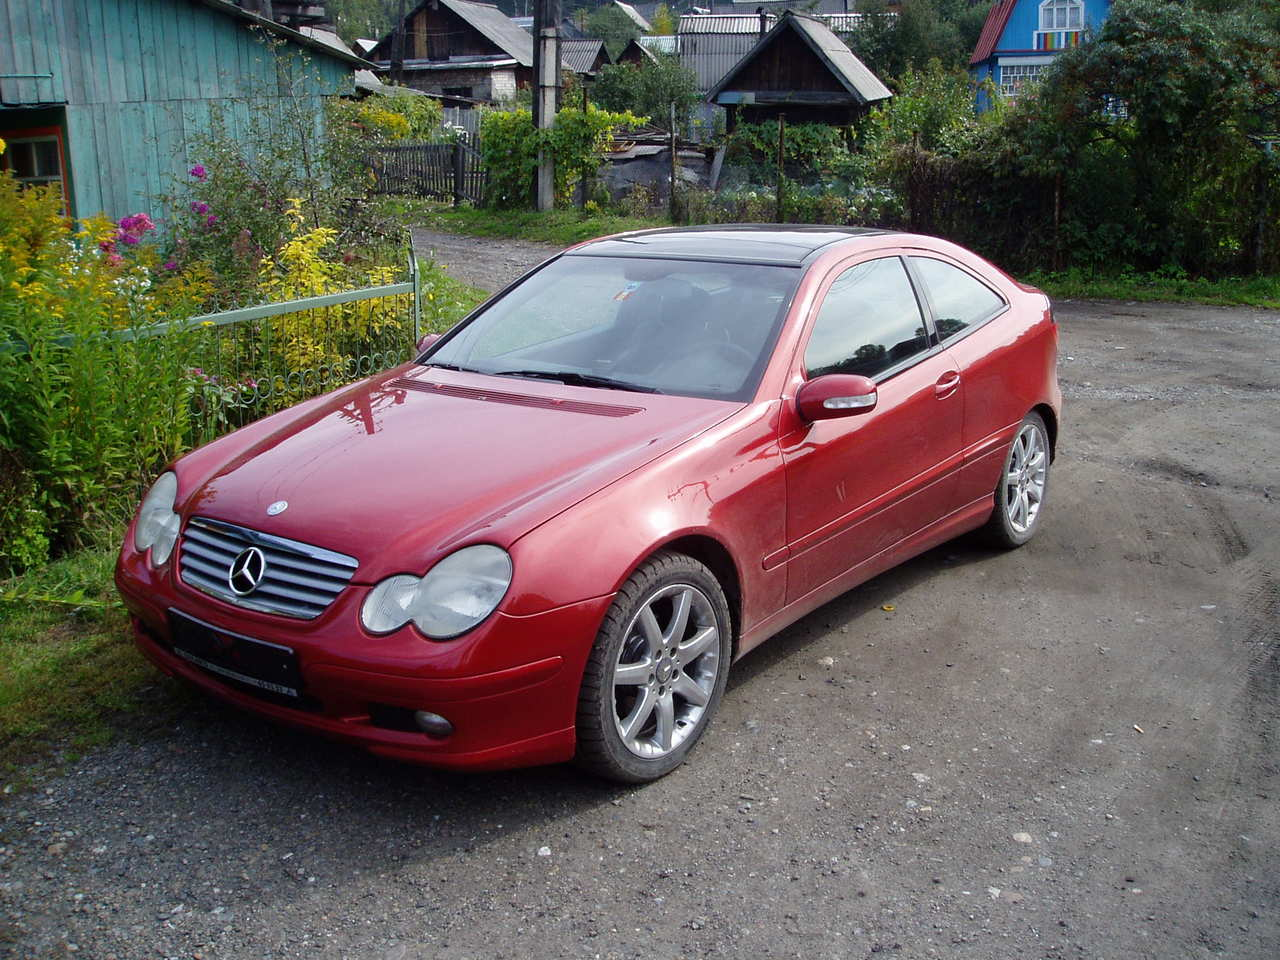 2001 mercedes benz c class pictures gasoline fr or rr automatic for sale. Black Bedroom Furniture Sets. Home Design Ideas